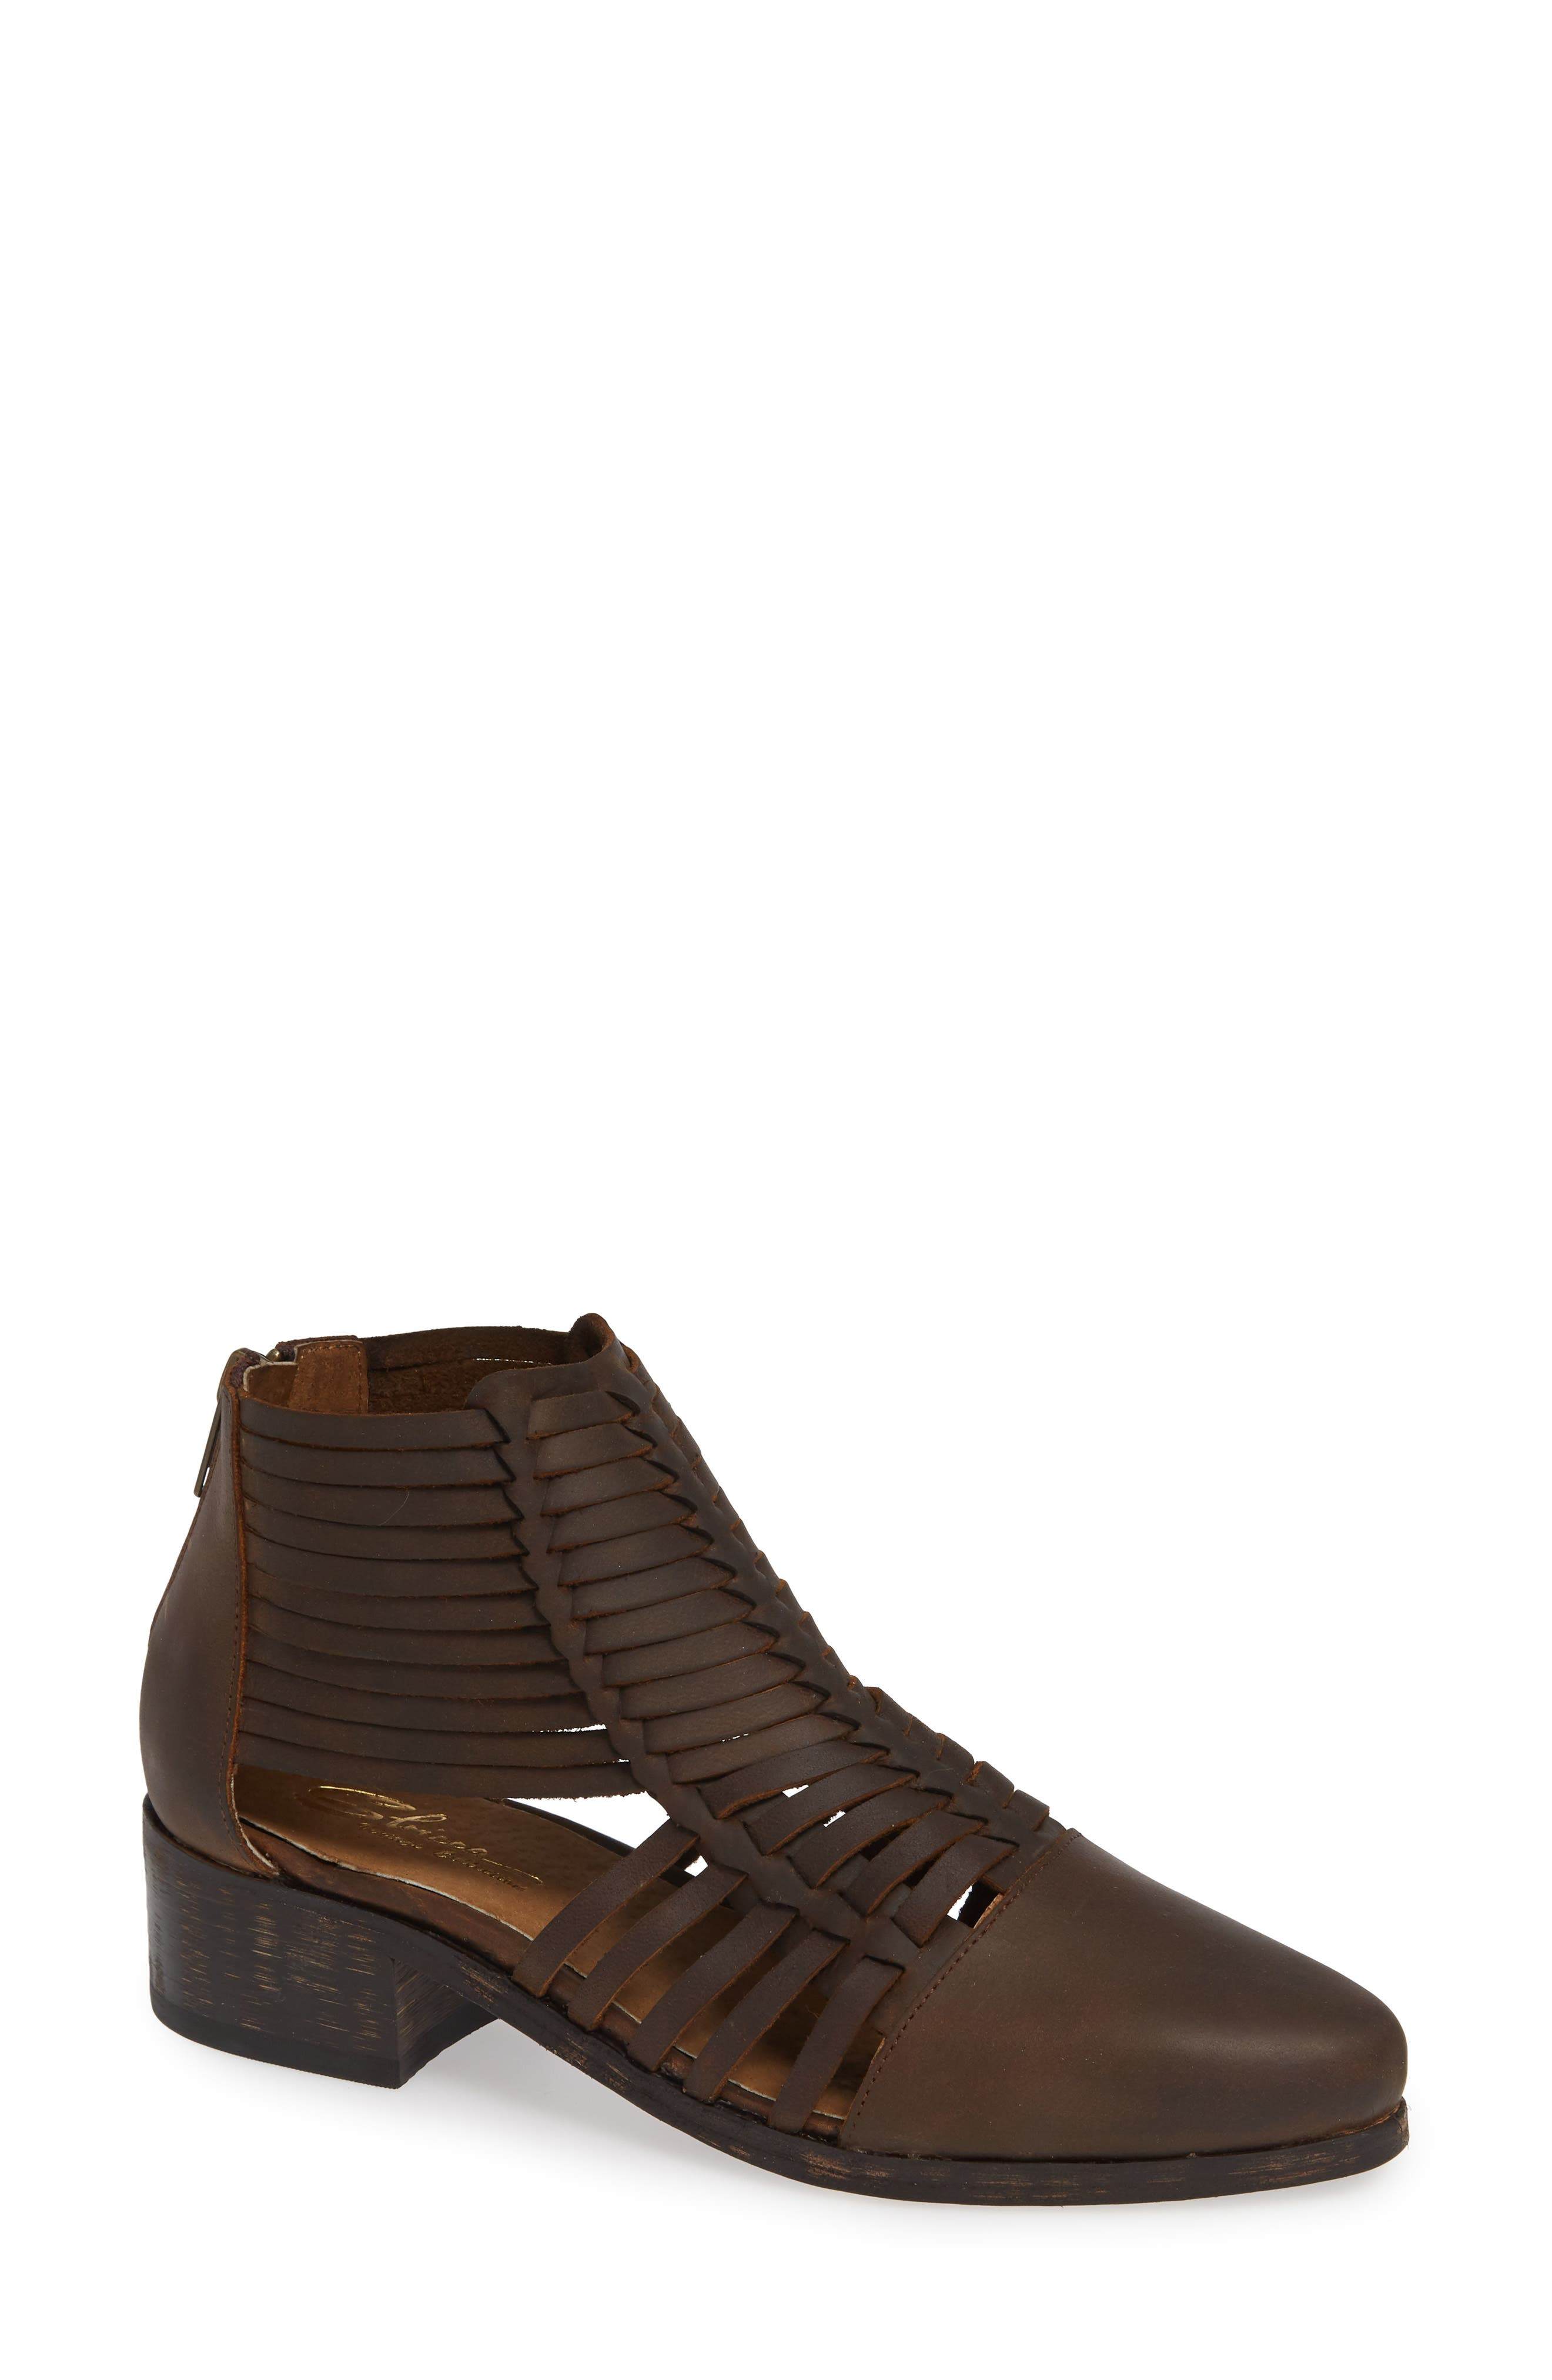 Sbicca Rosabell Woven Bootie, Brown